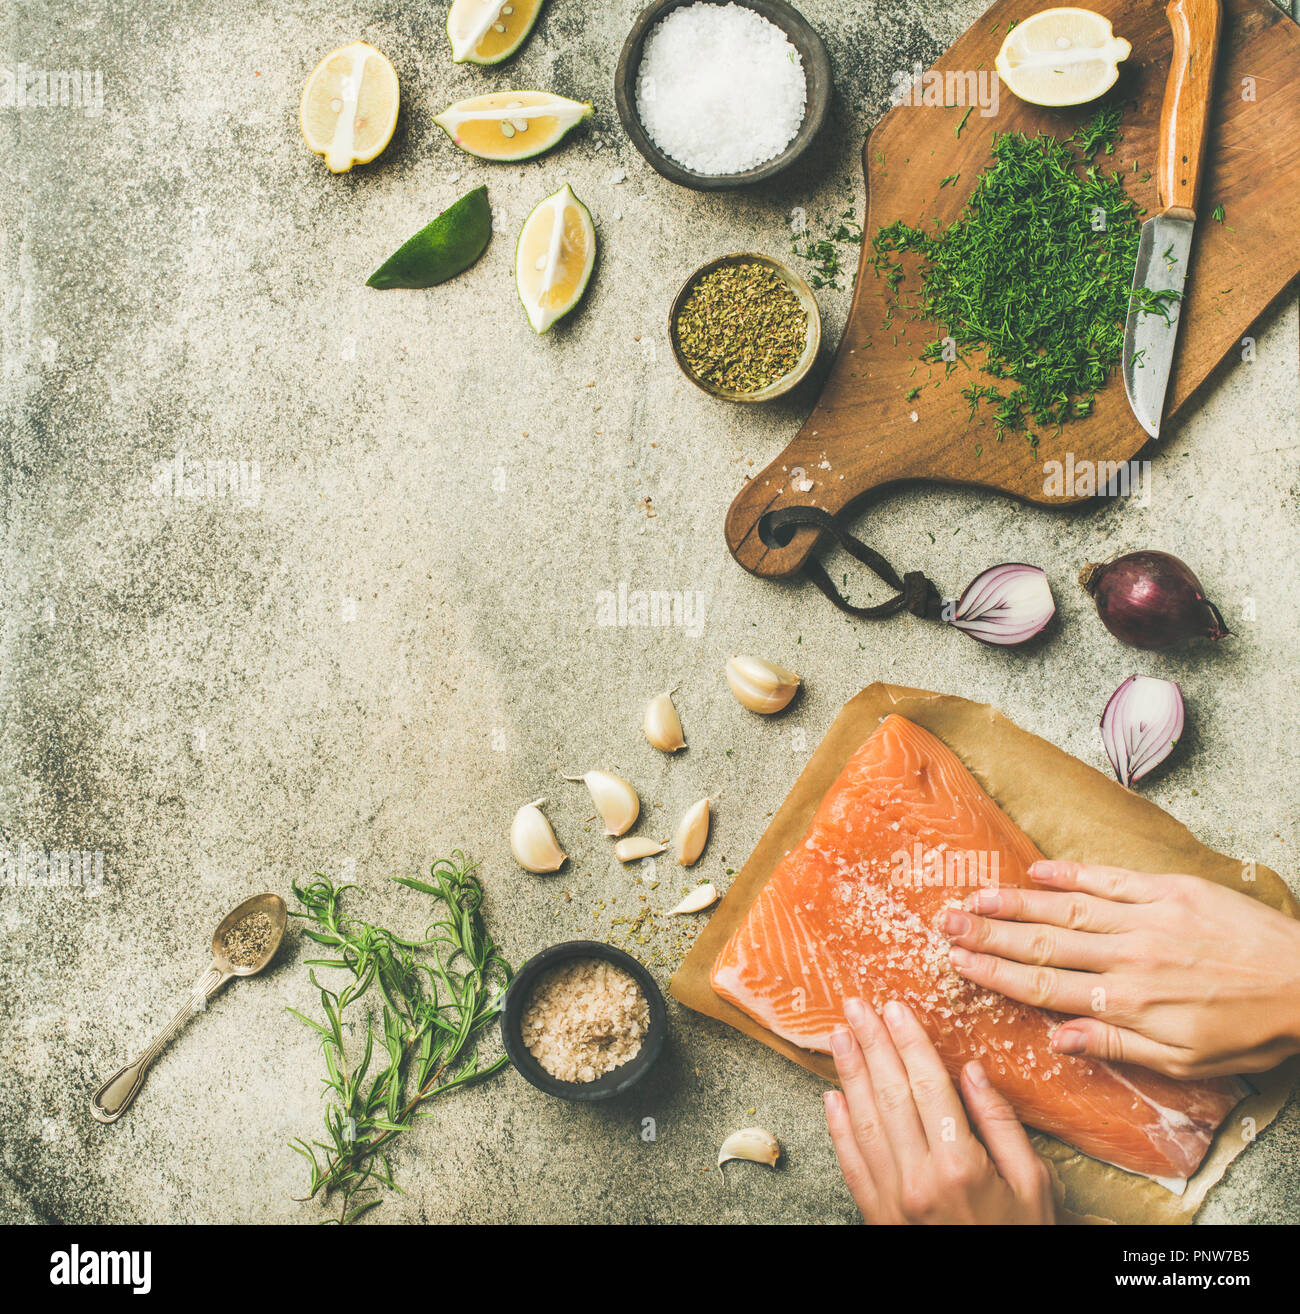 Female hands cooking salted salmon fish fillet on grey table - Stock Image